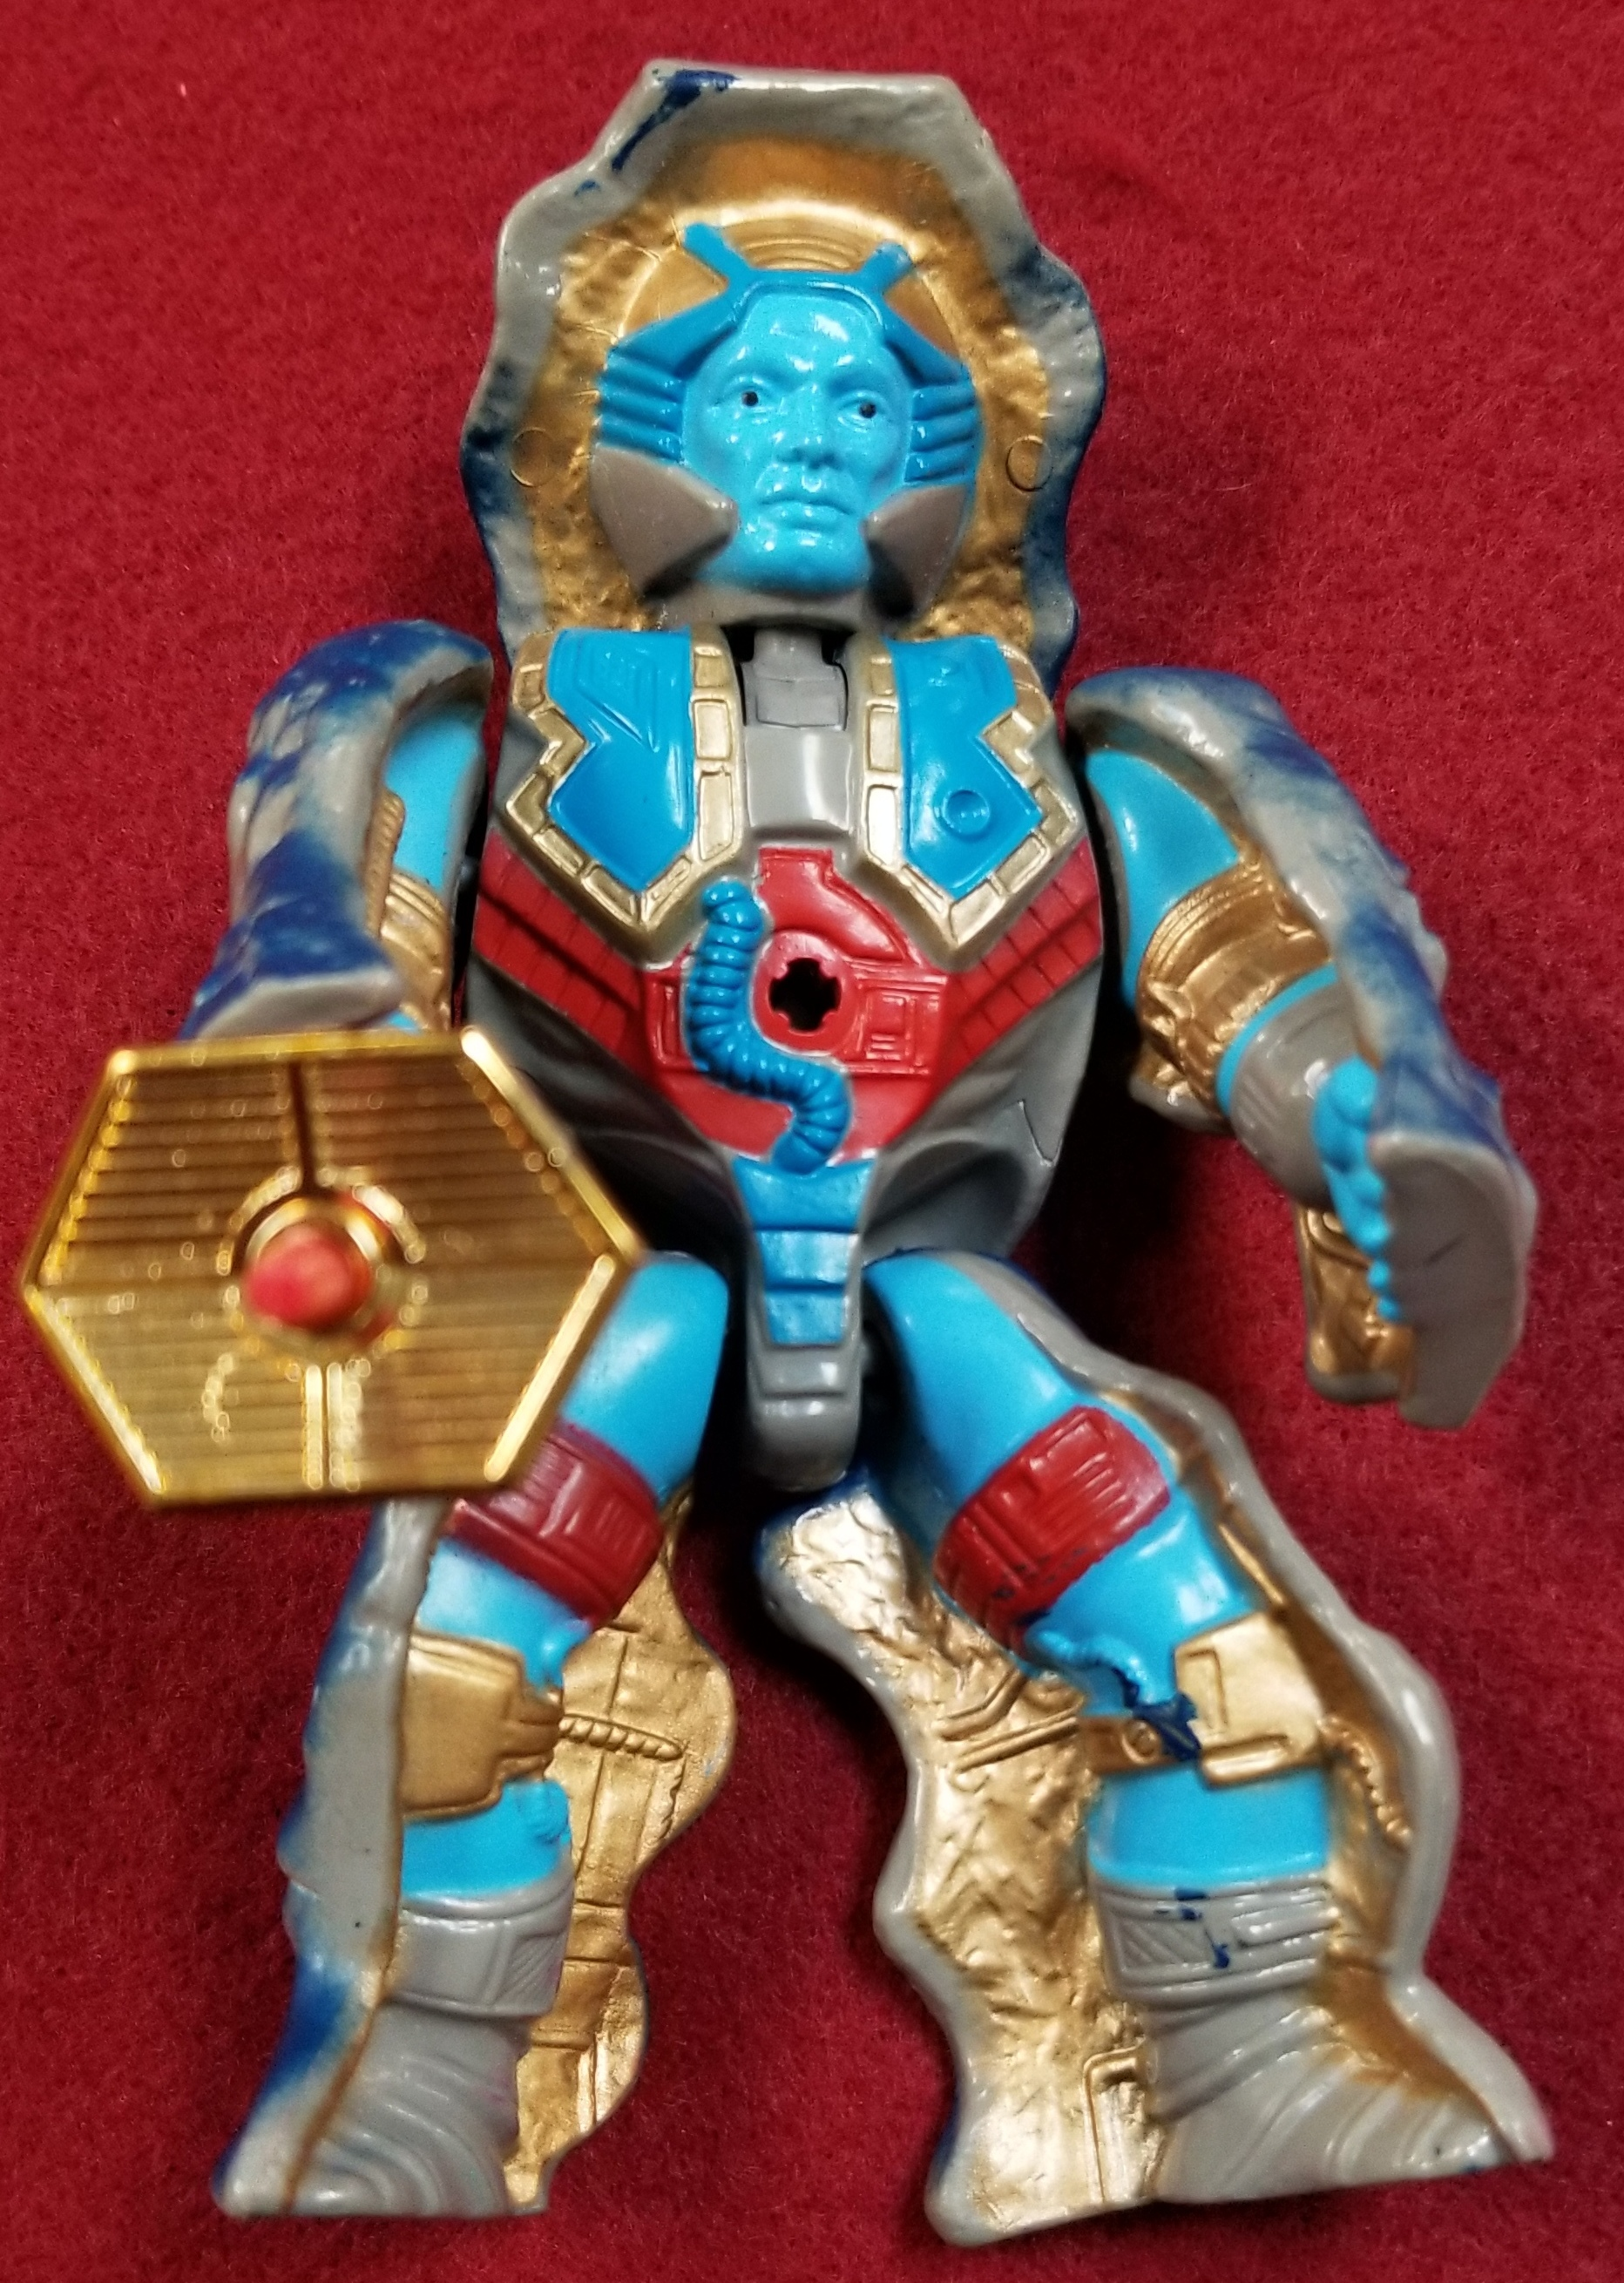 TOYS/COLLECTIBLES: MASTERS OF THE UNIVERSE CLASSIC FIGURES - STONEDAR